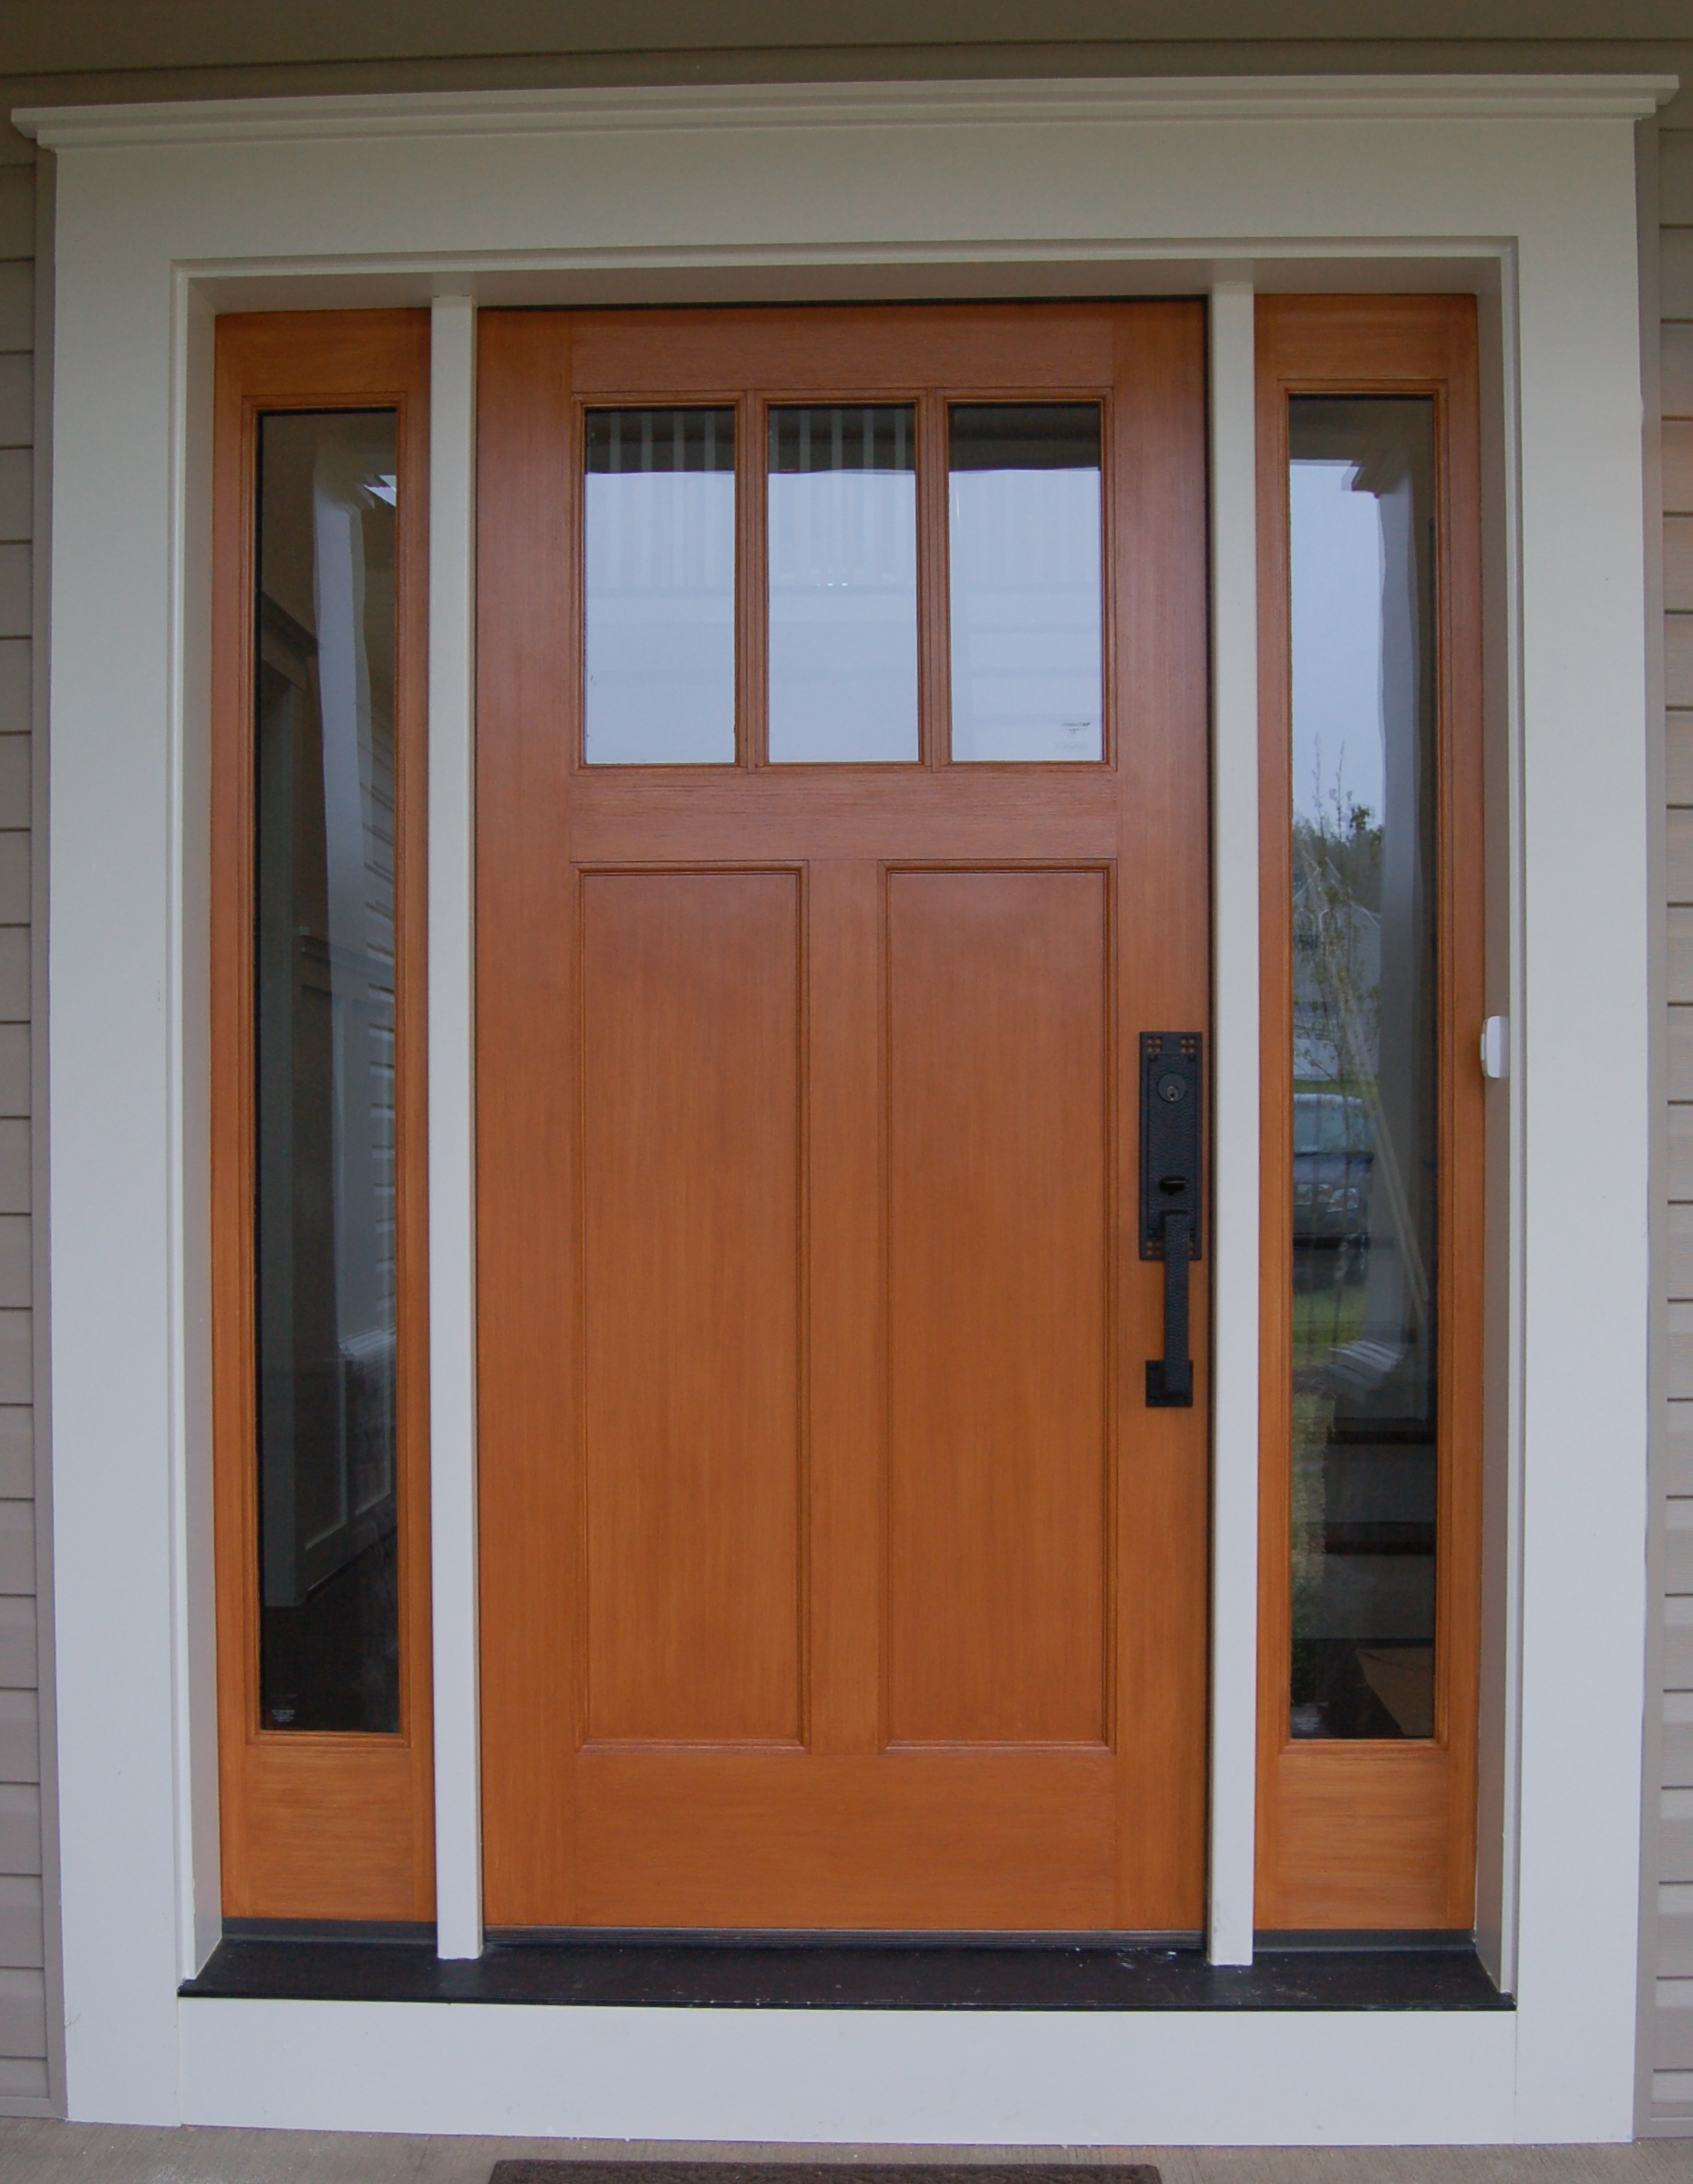 Orange Reliabilt Doors With Black Handle Matched With Double Glass Window Ideas